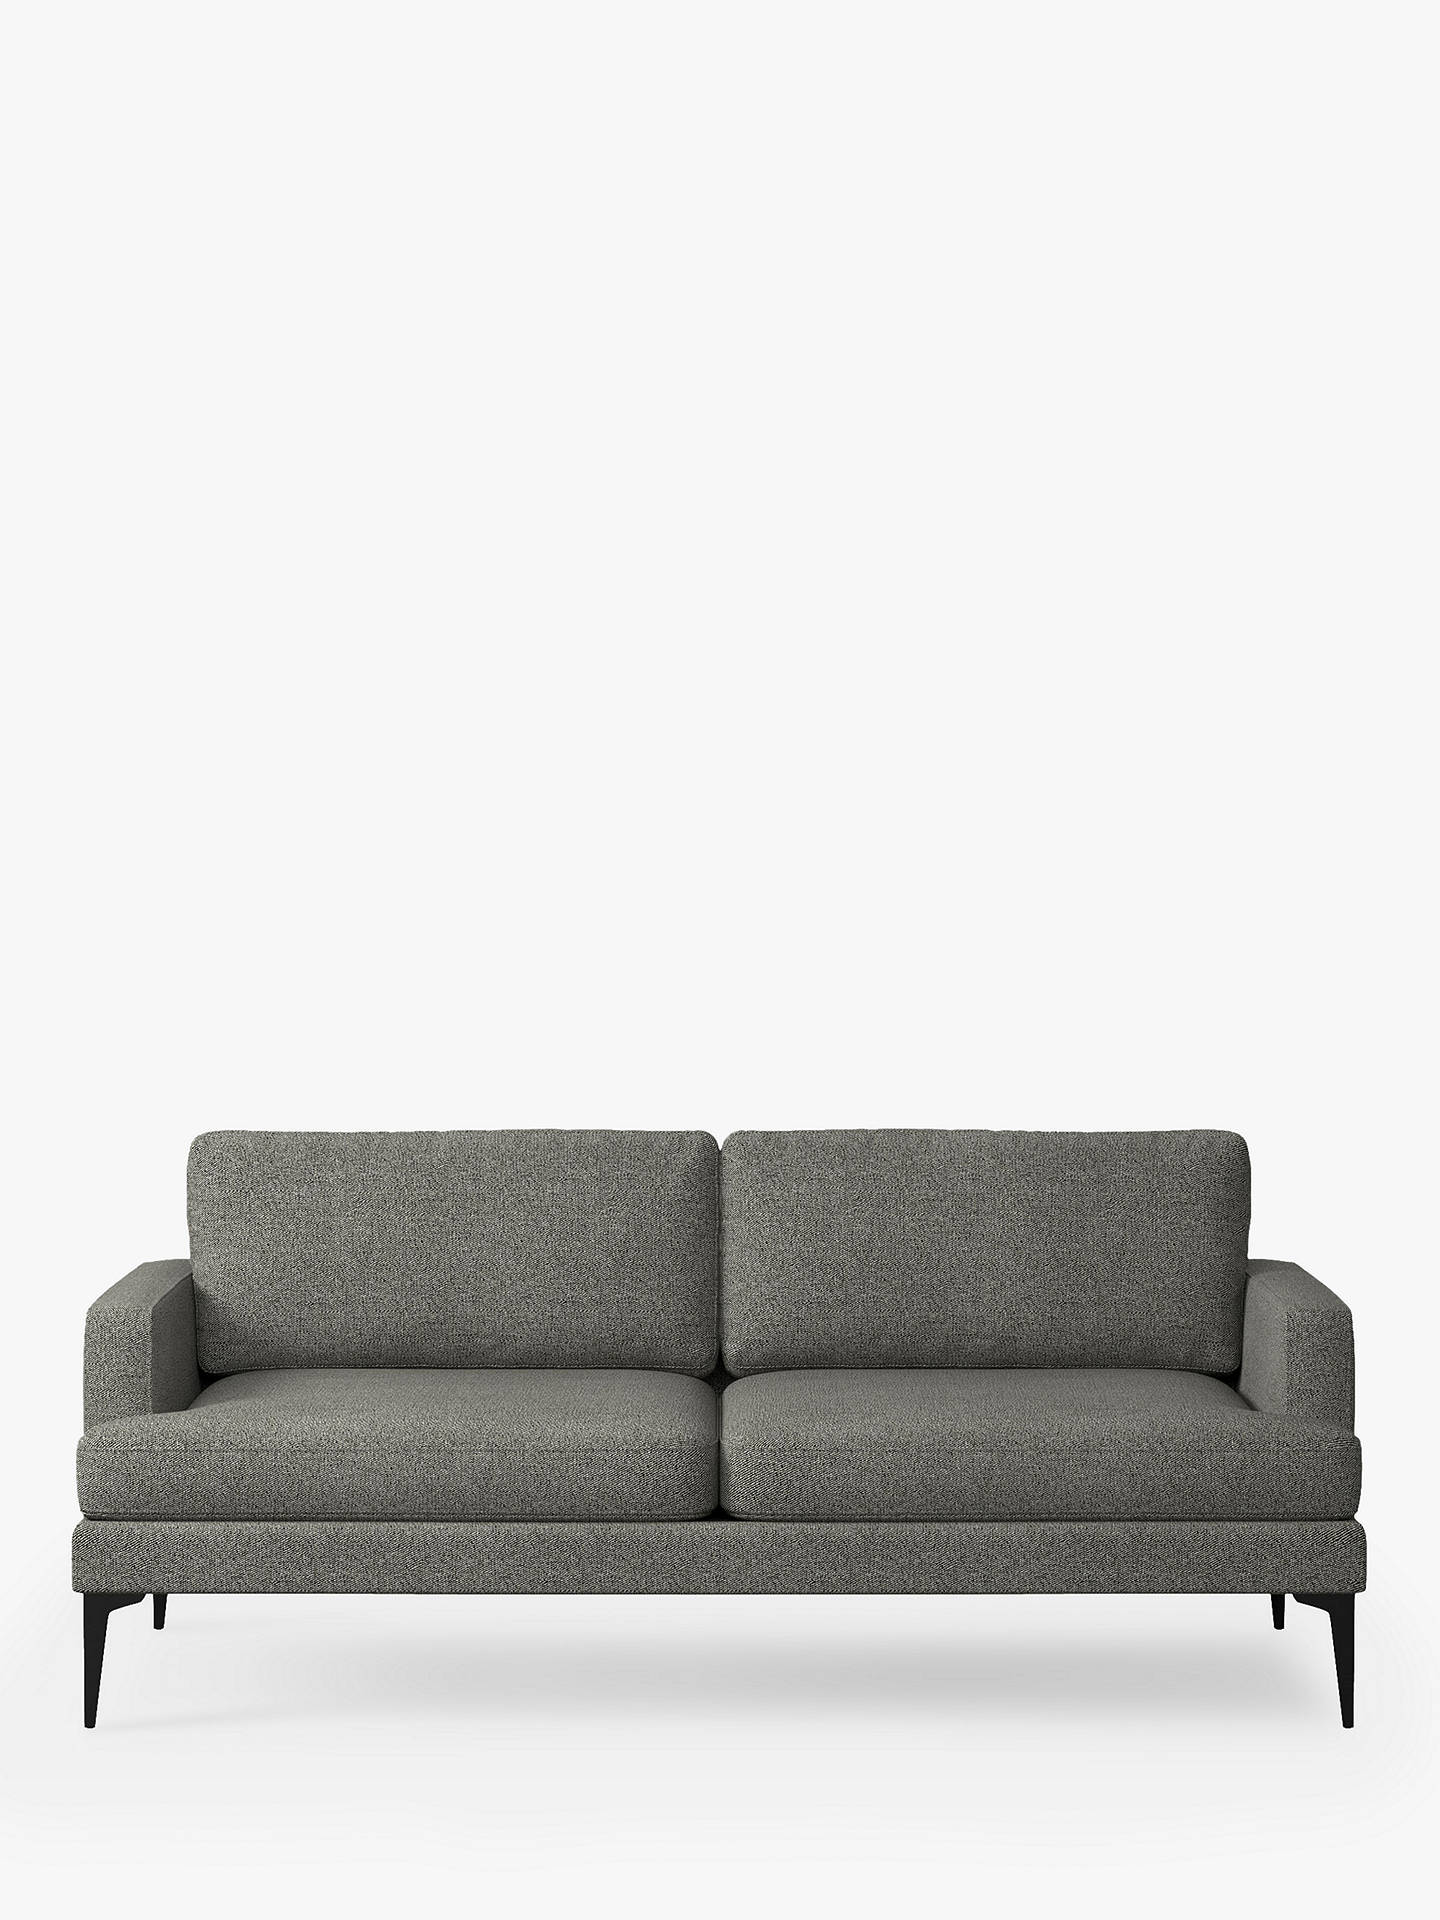 Buy west elm Andes Large 3 Seater Sofa, Granite Twill Online at johnlewis.com